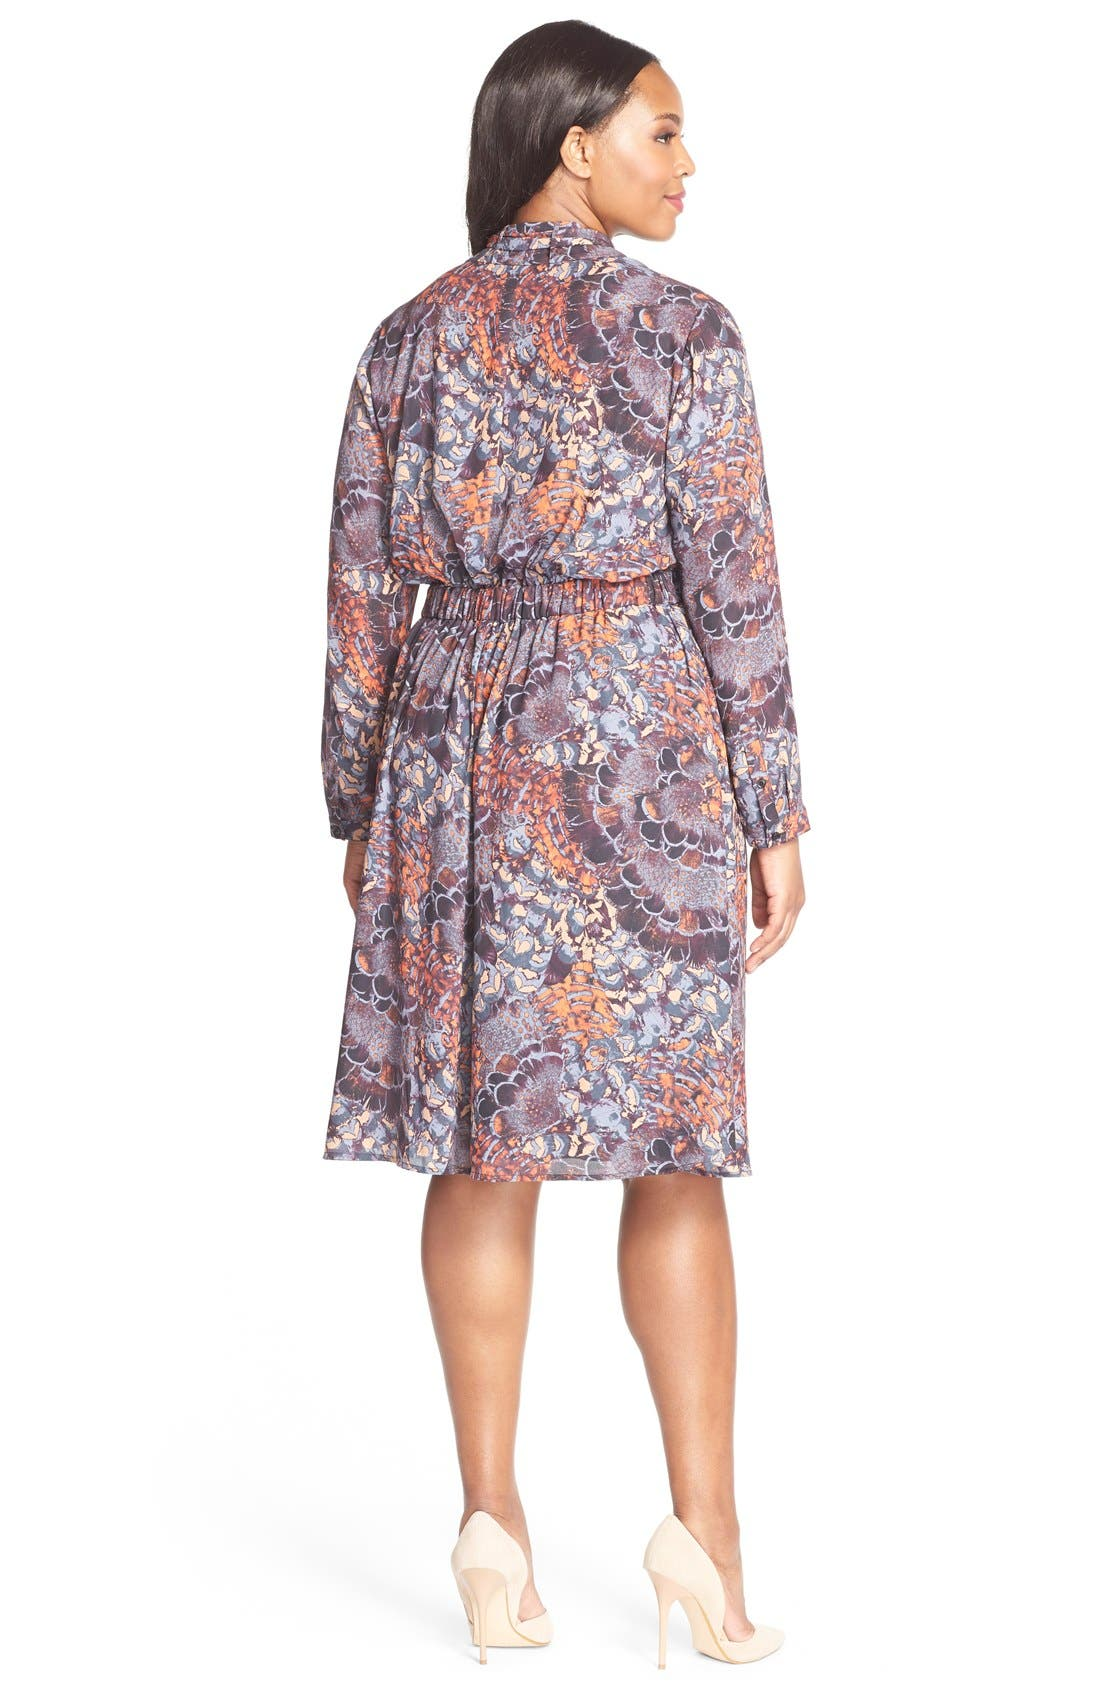 SEJOUR, Scarf Print Tie Neck Dress, Alternate thumbnail 2, color, 800